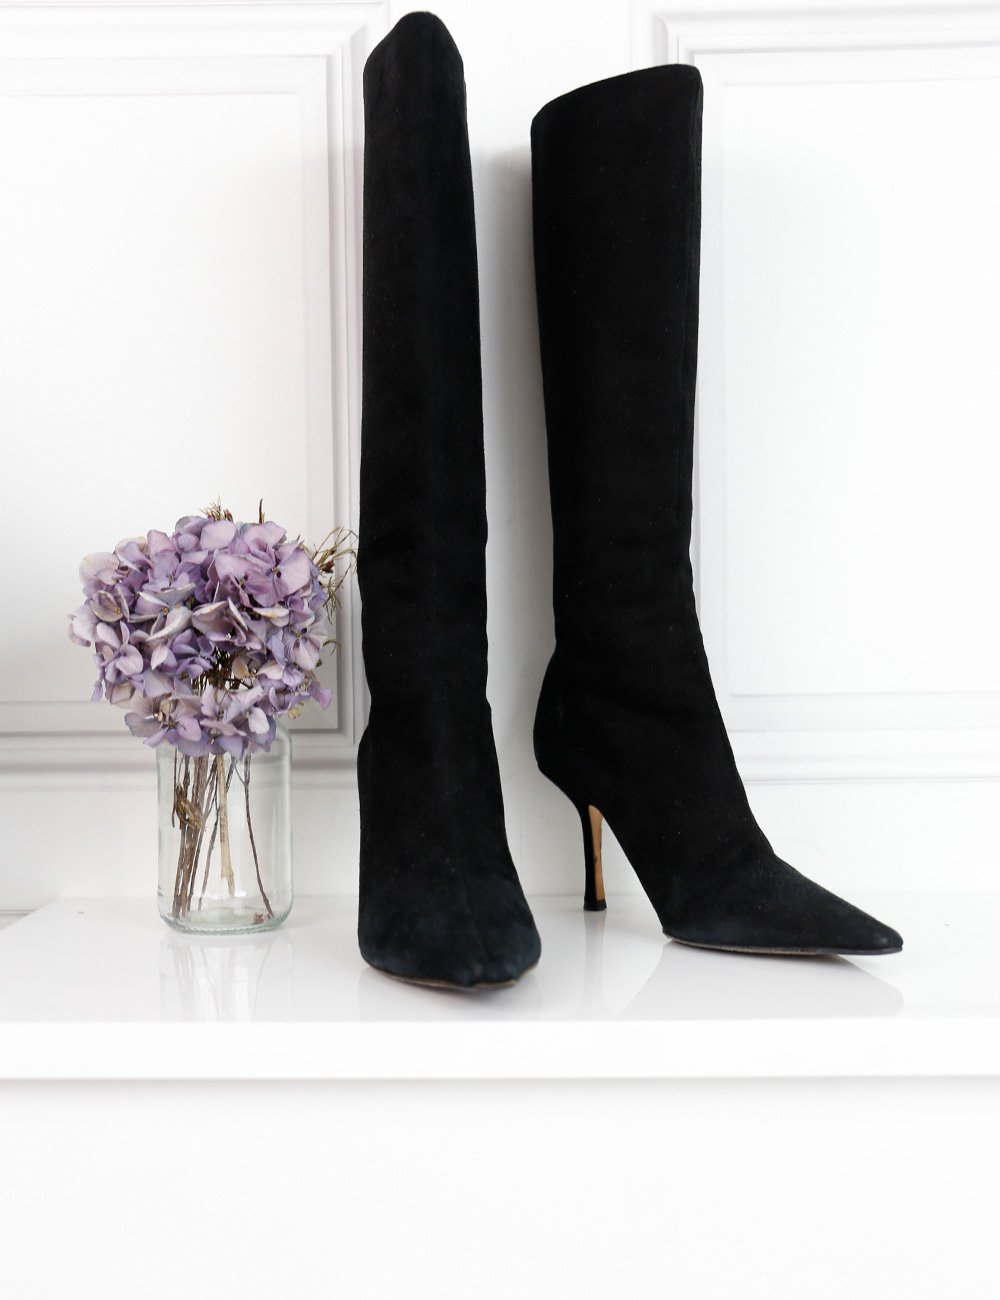 Jimmy Choo black suede knee-high stiletto boots 4.5Uk- My Wardrobe Mistakes